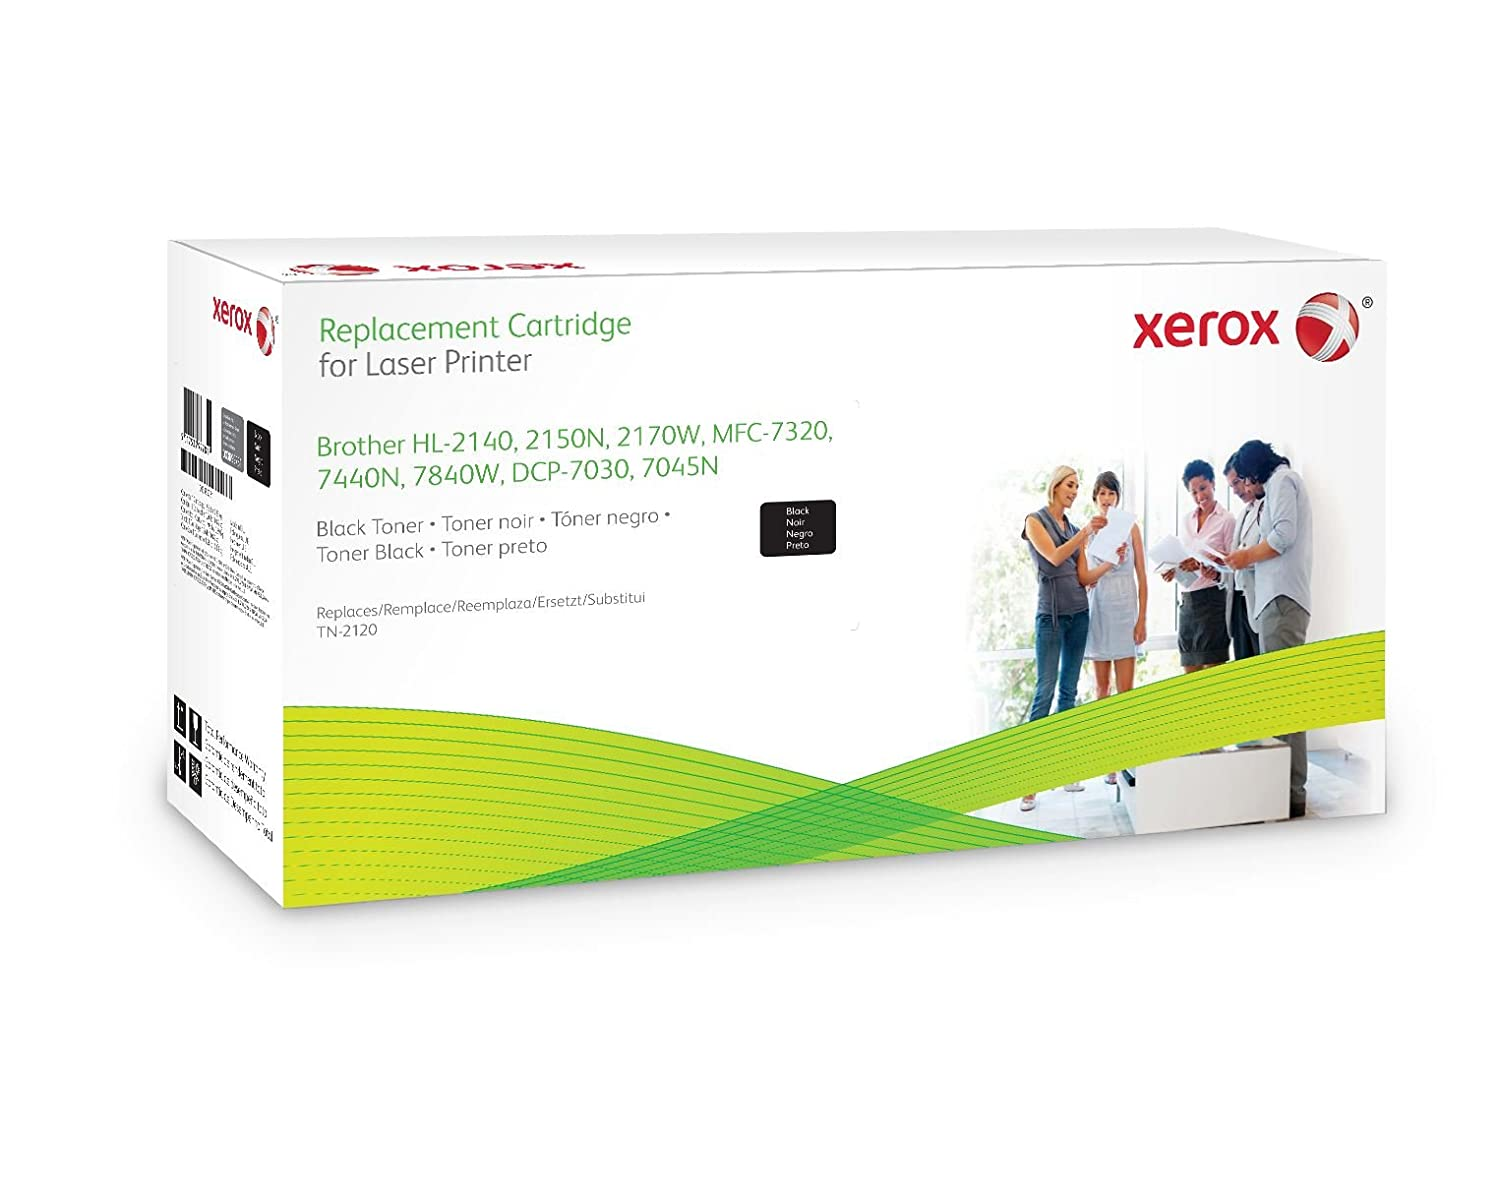 Xerox TN2120 Brother HL Black Toner Cartridge equivalent, for use in